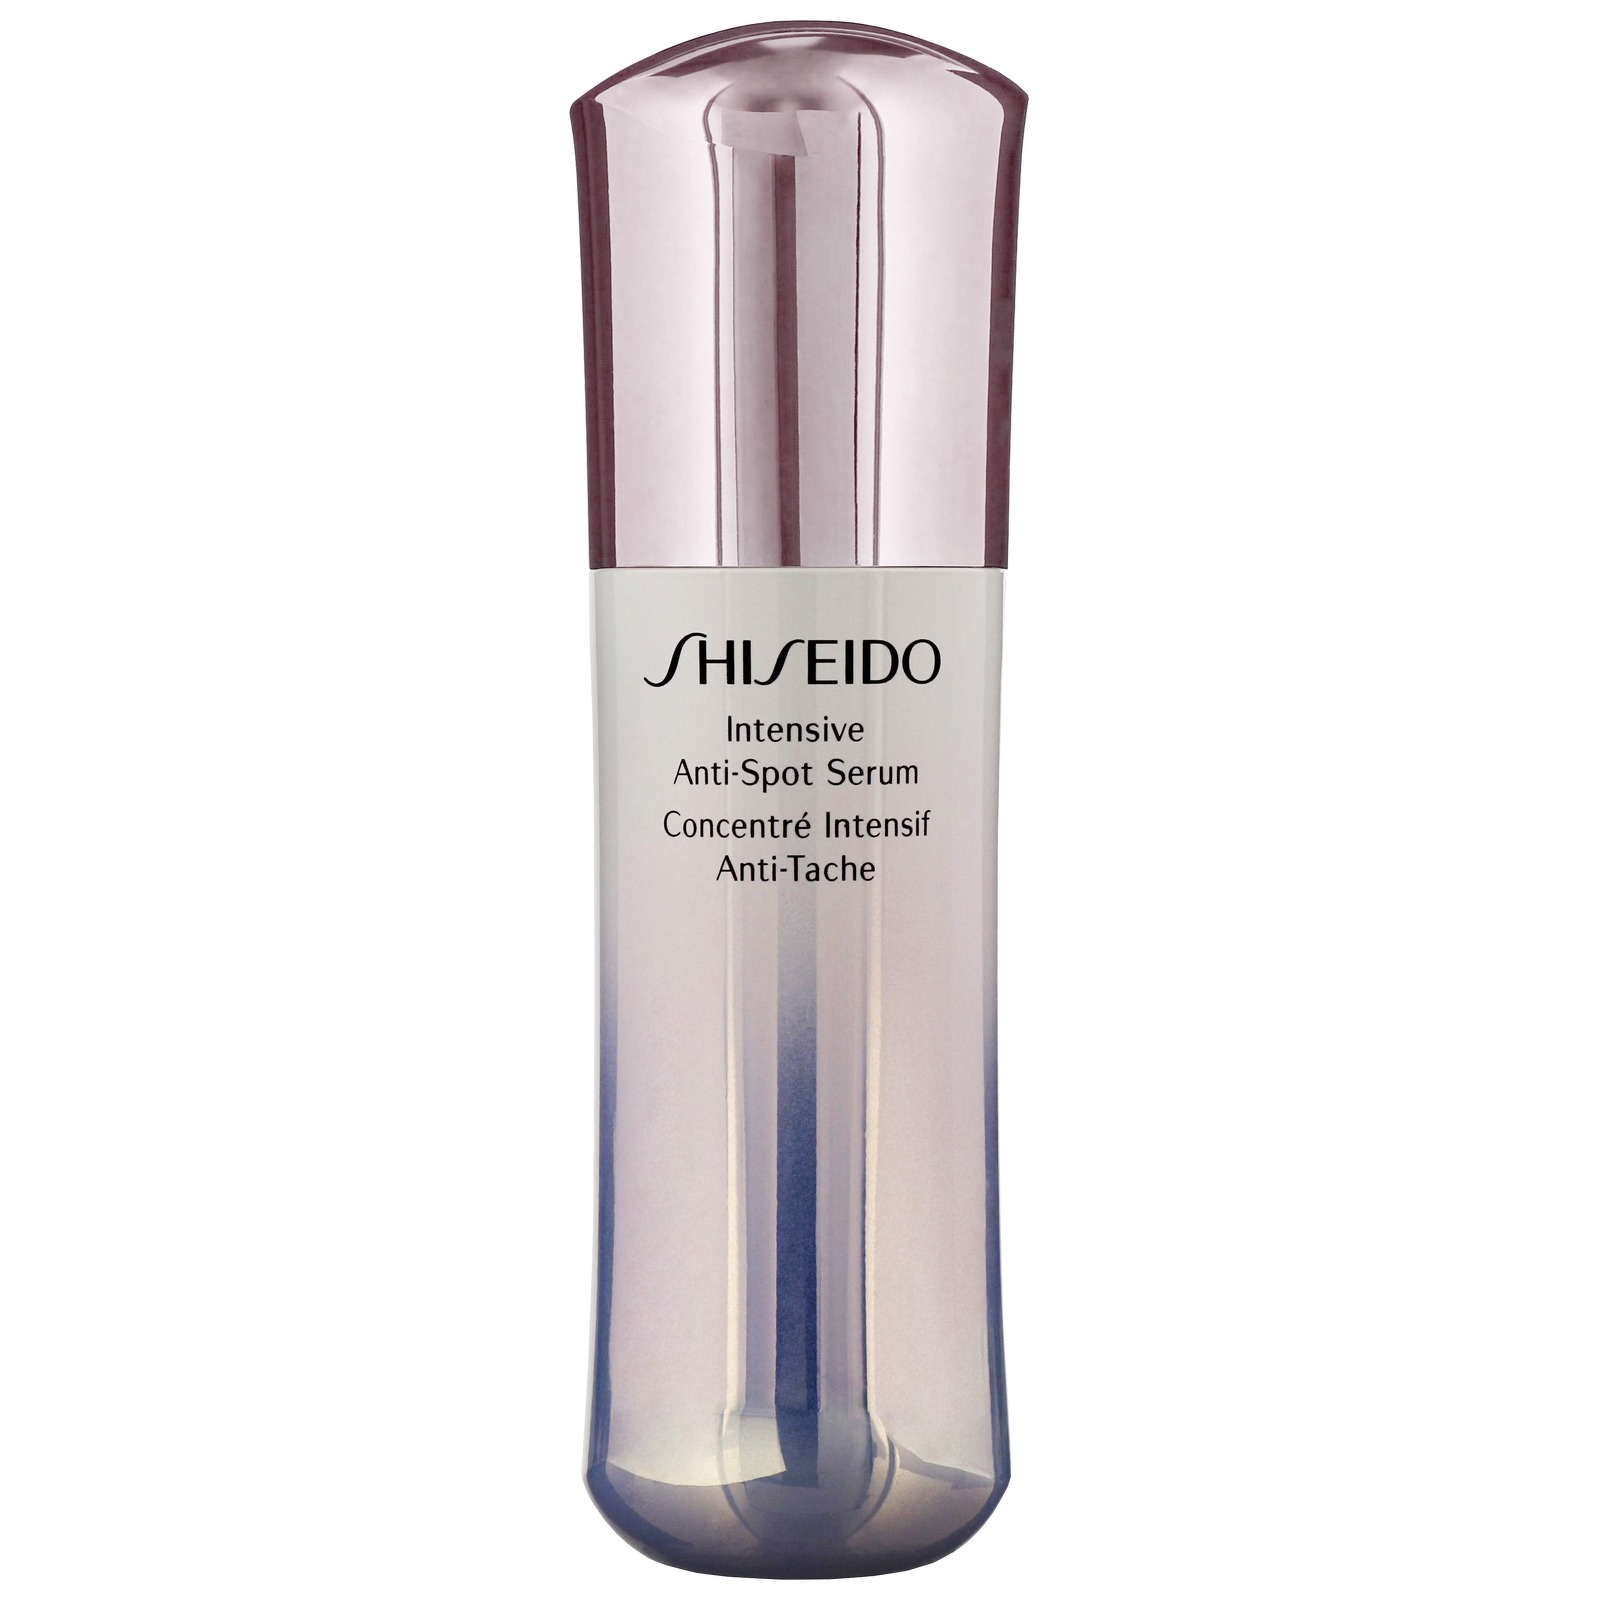 Shiseido Even Skin Tone Care Intensive Anti-Spot Serum 30ml / 1 fl.oz.